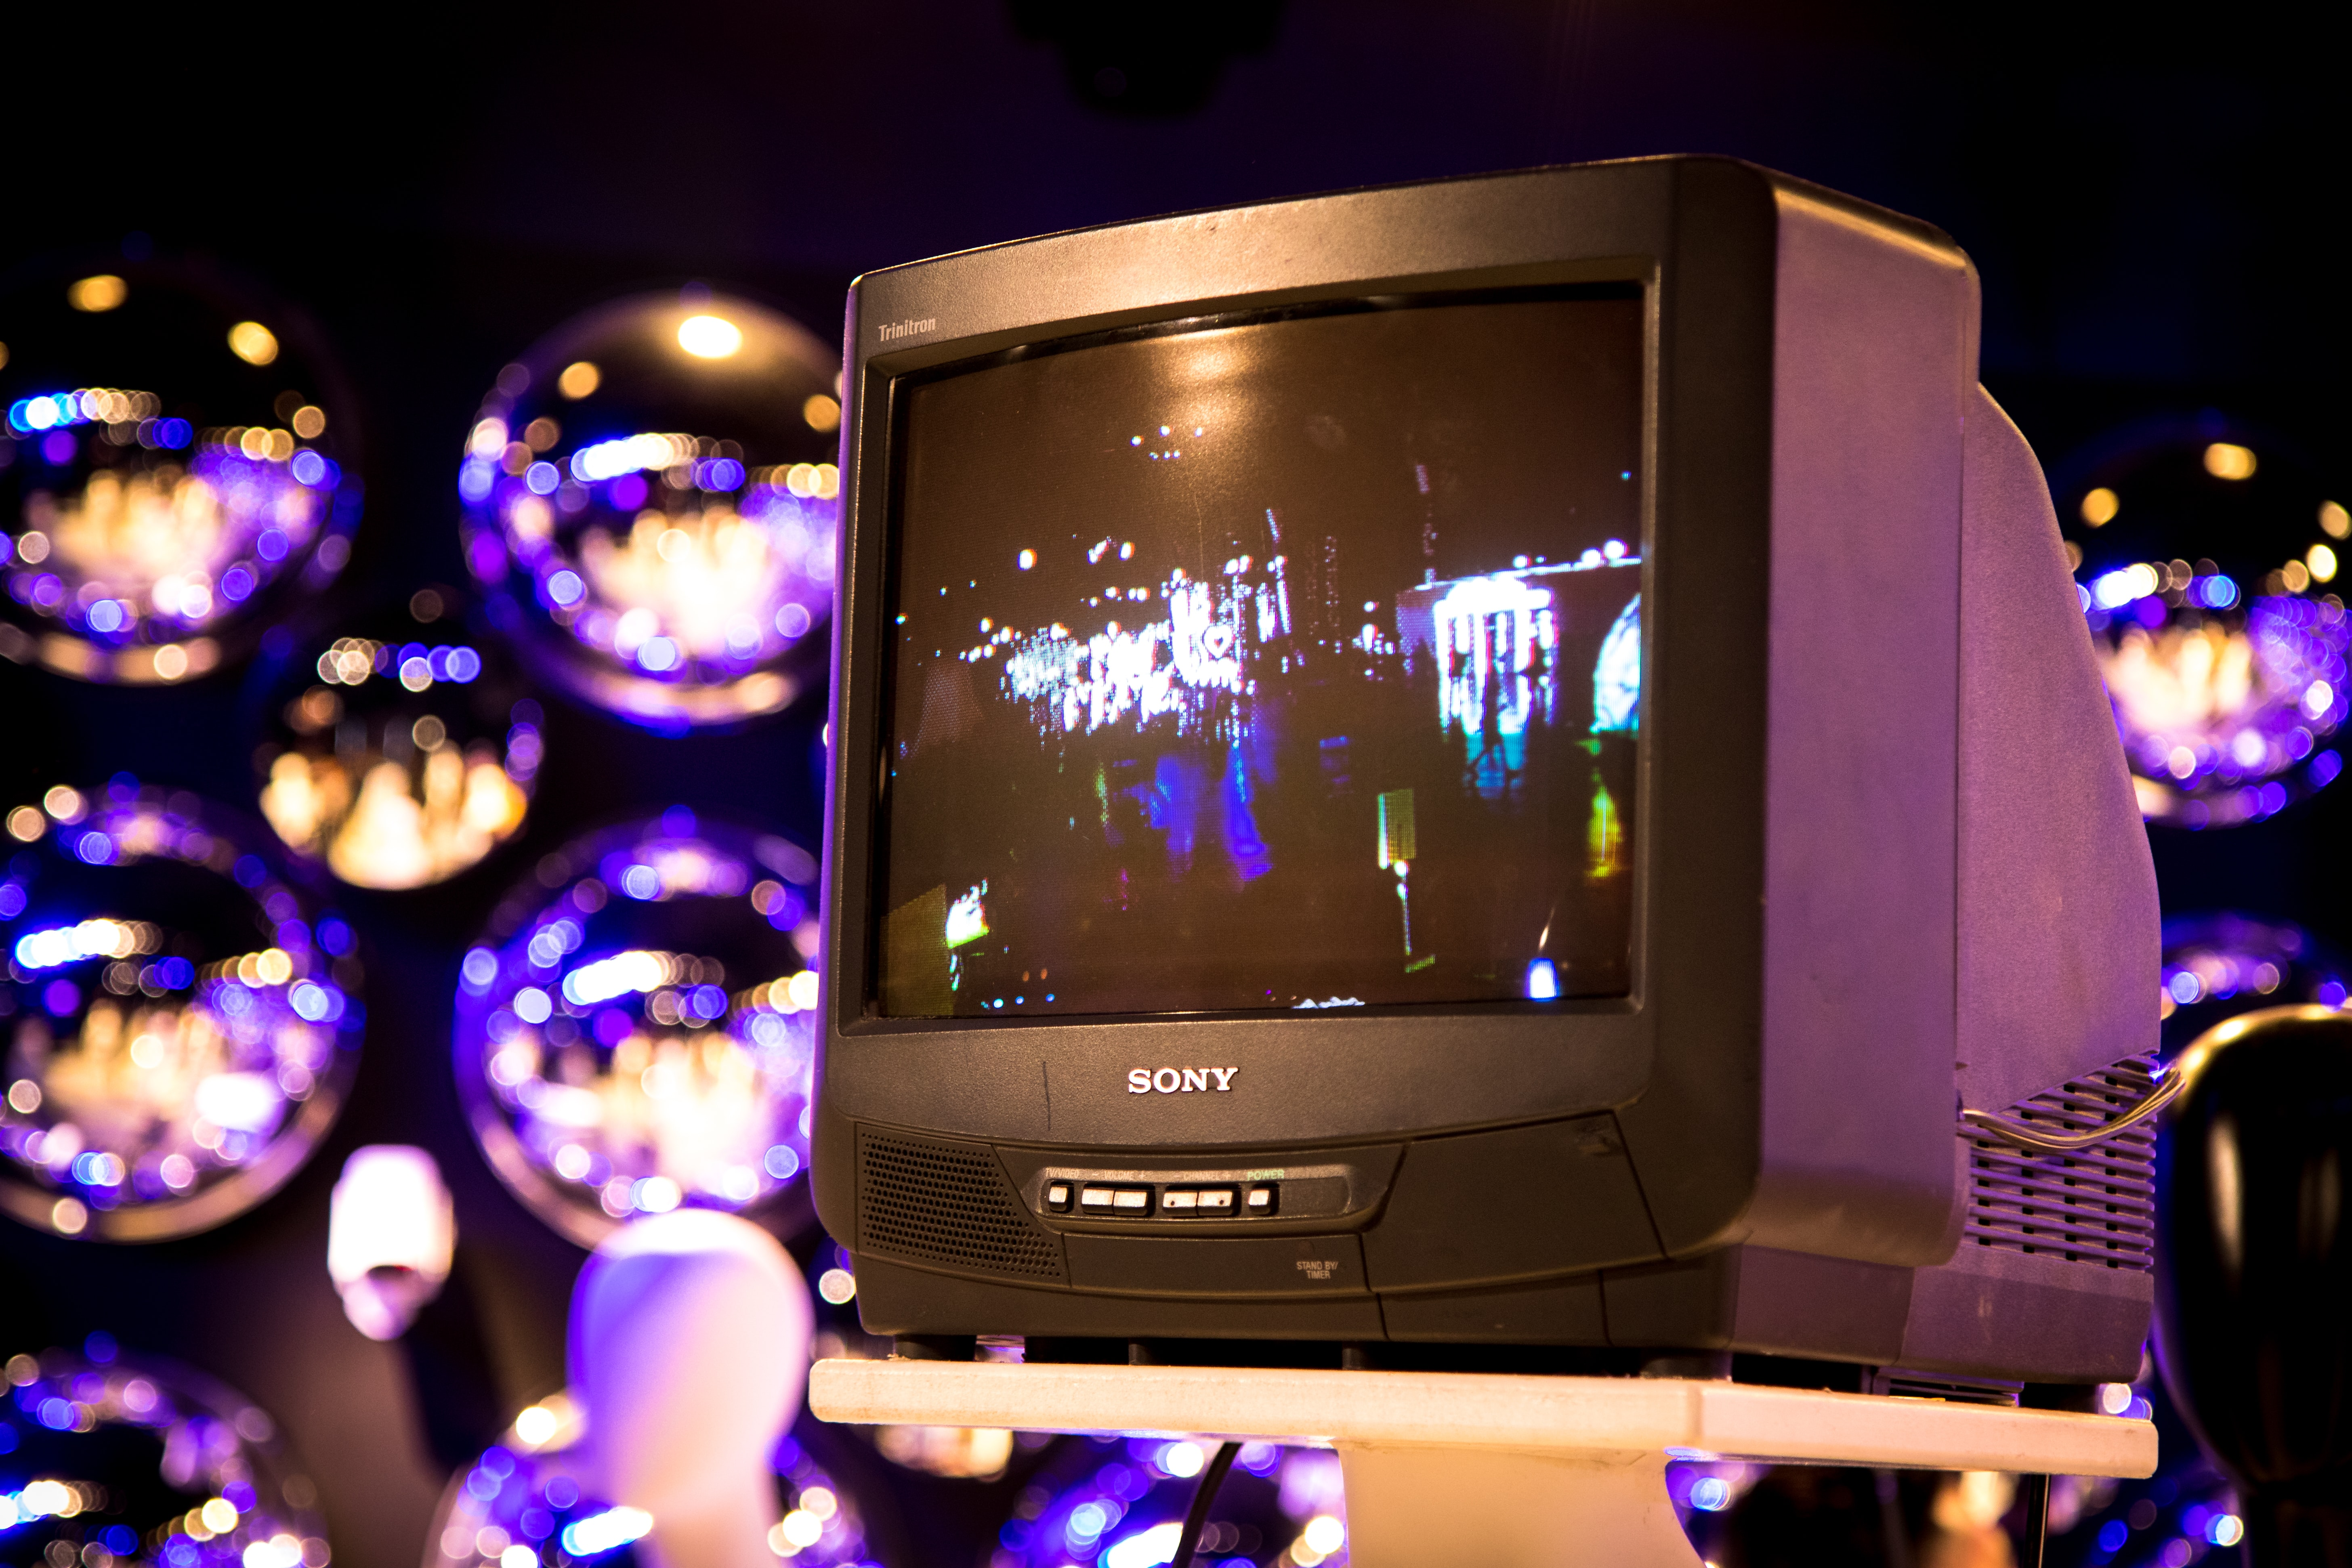 close-up photo of Sony CRT television